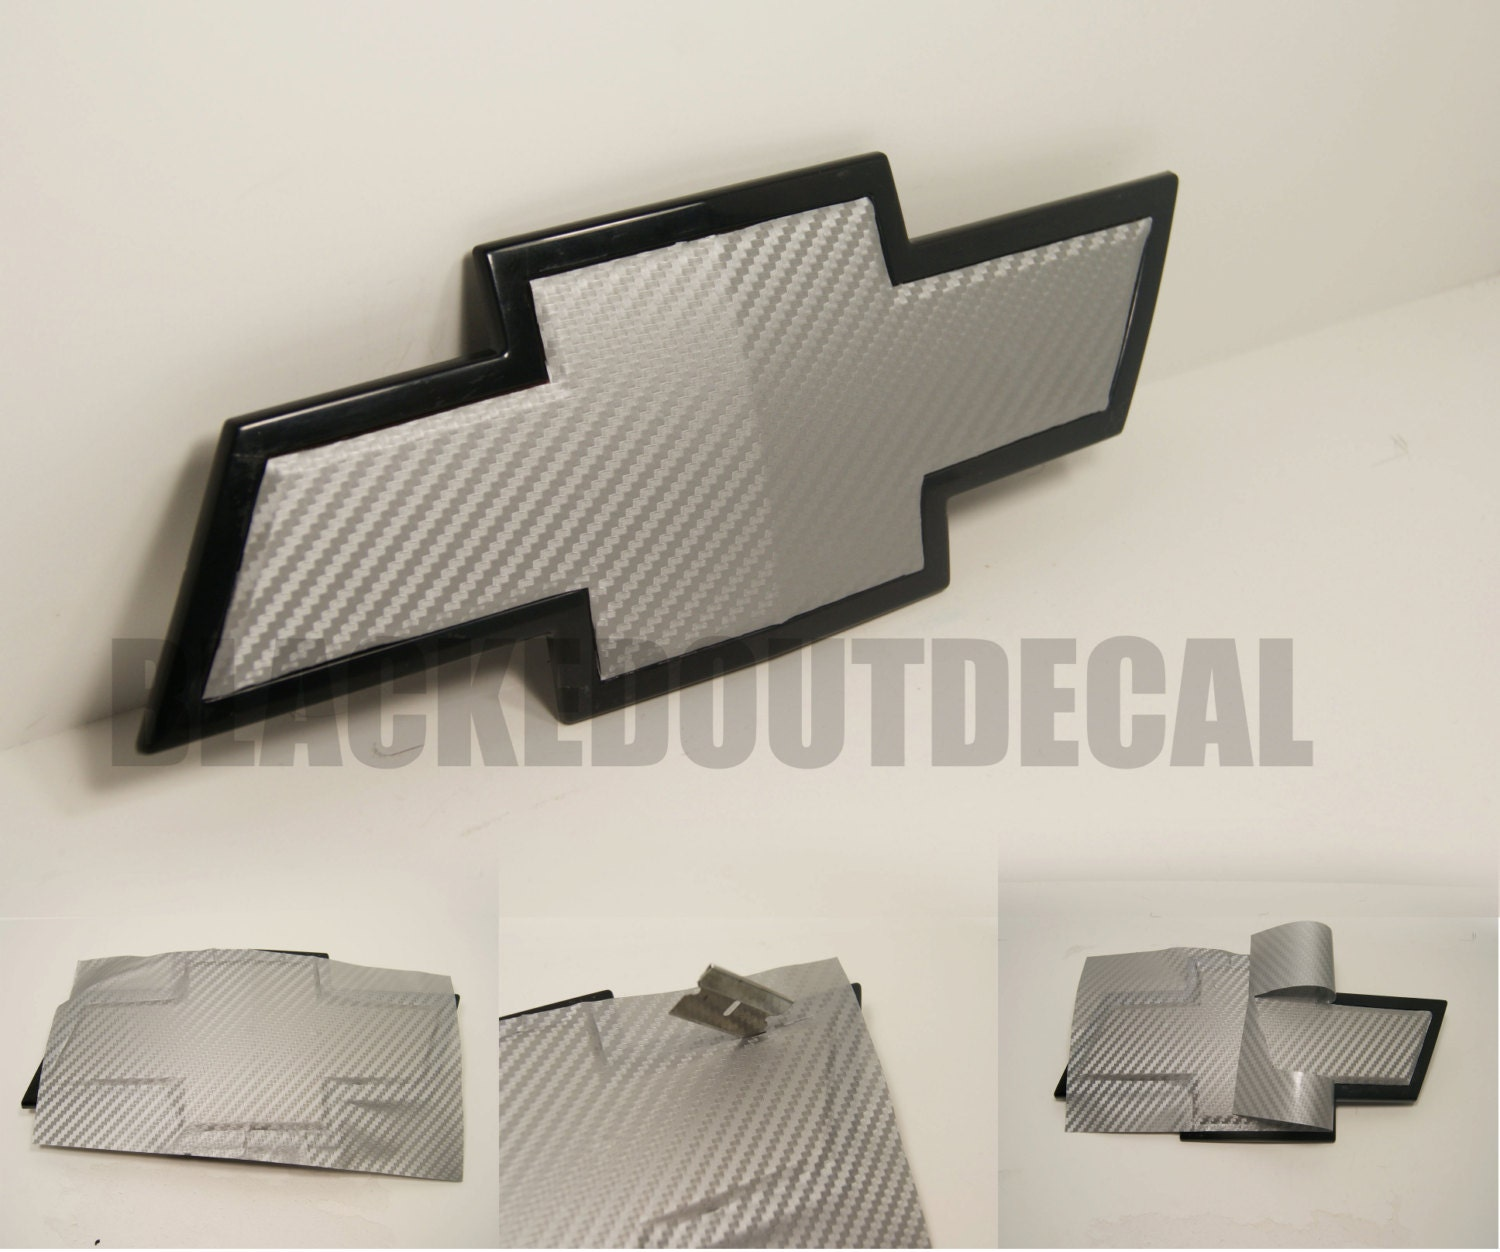 All Chevy black chevy symbol : 2 Silver Carbon Fiber Chevy Bowtie Vinyl Overlay Sheets Emblem